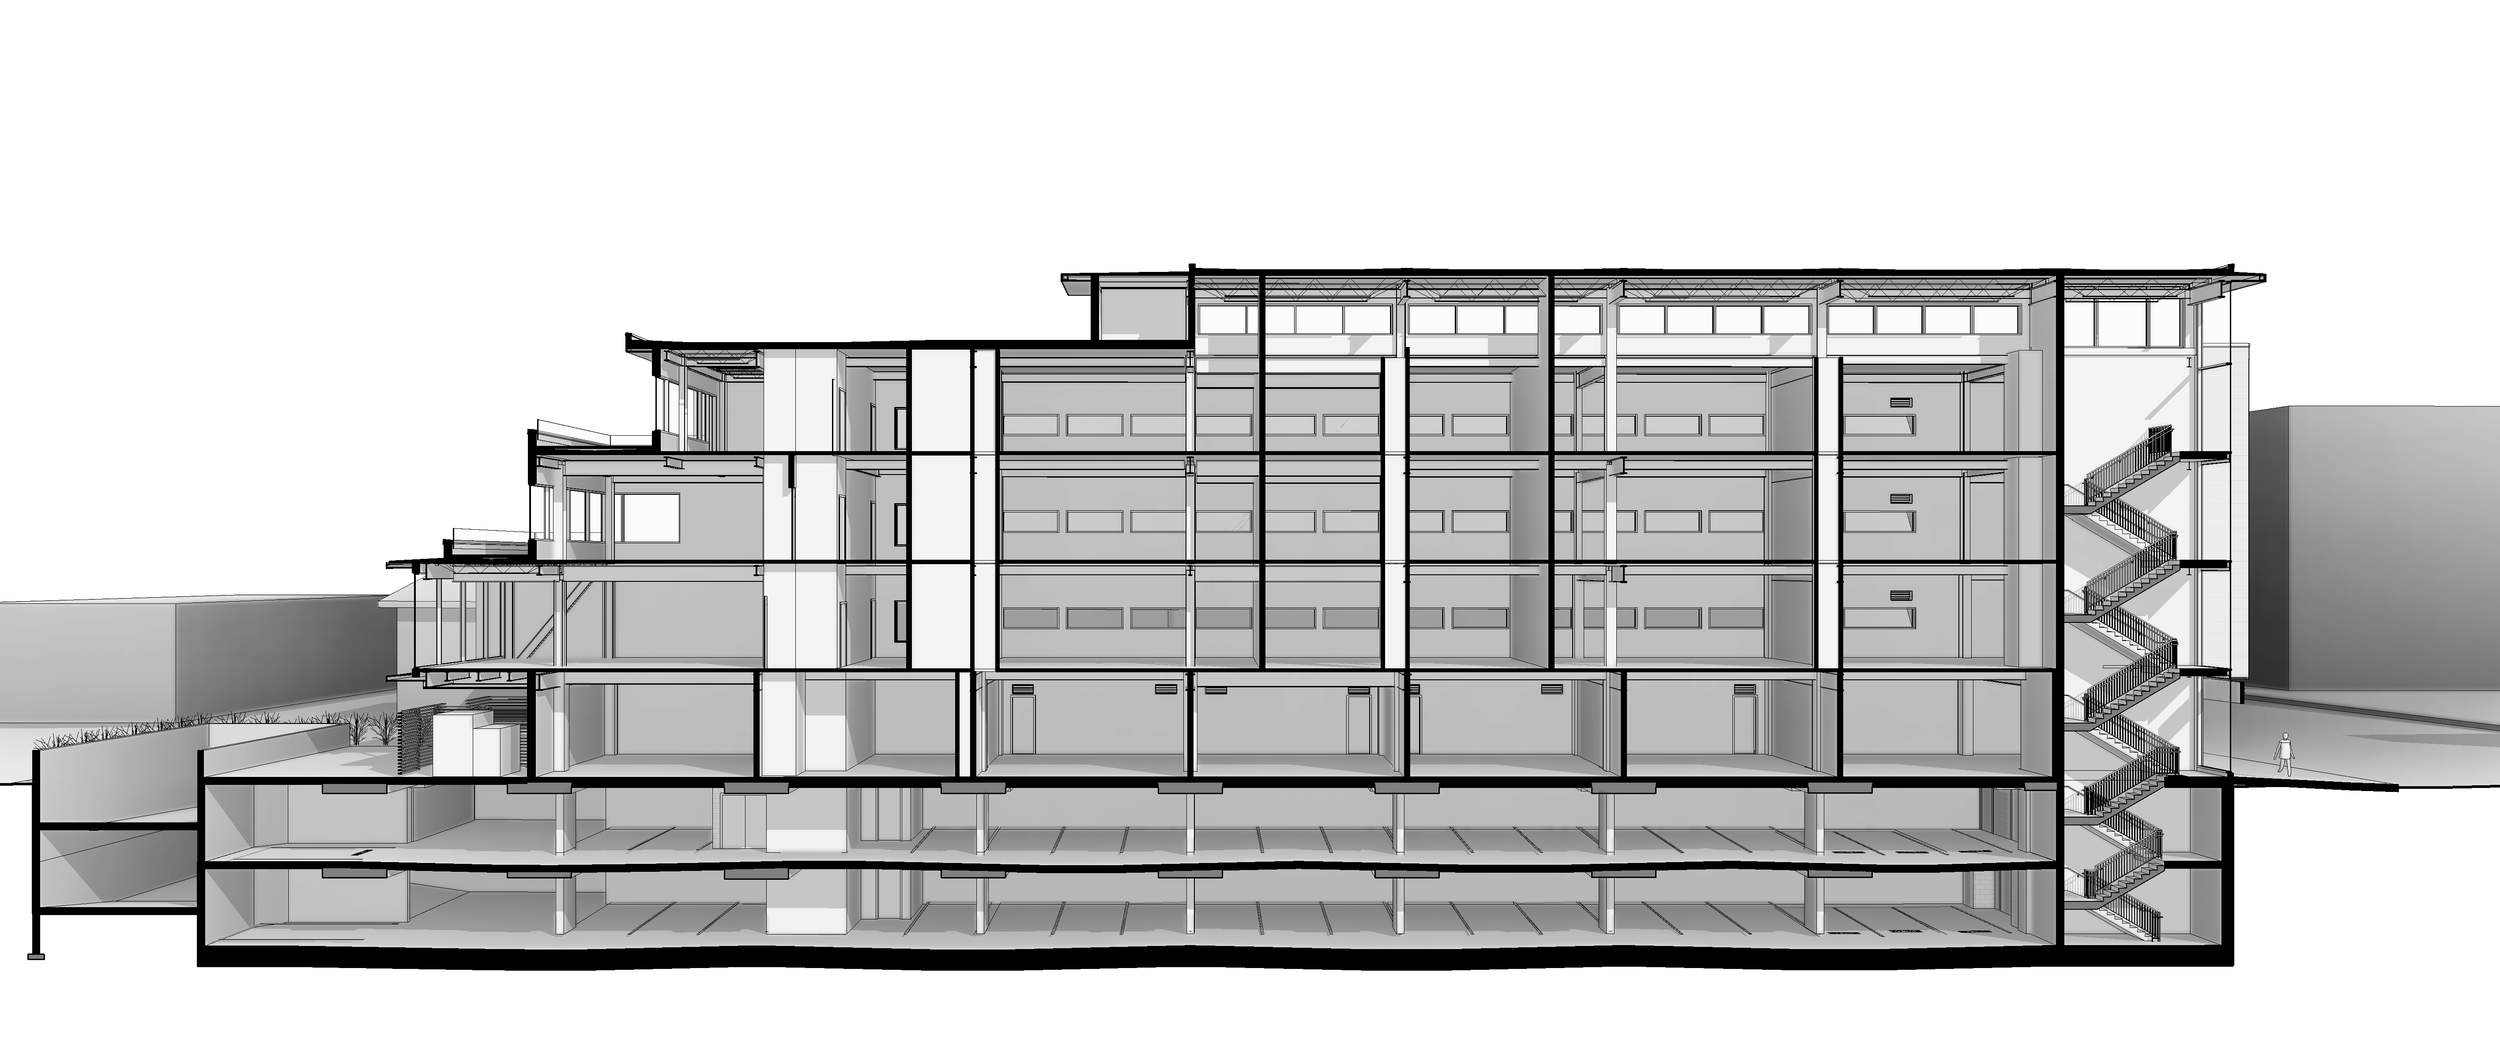 McCallum_ 2018 - 3D View - Perspection (Web).png